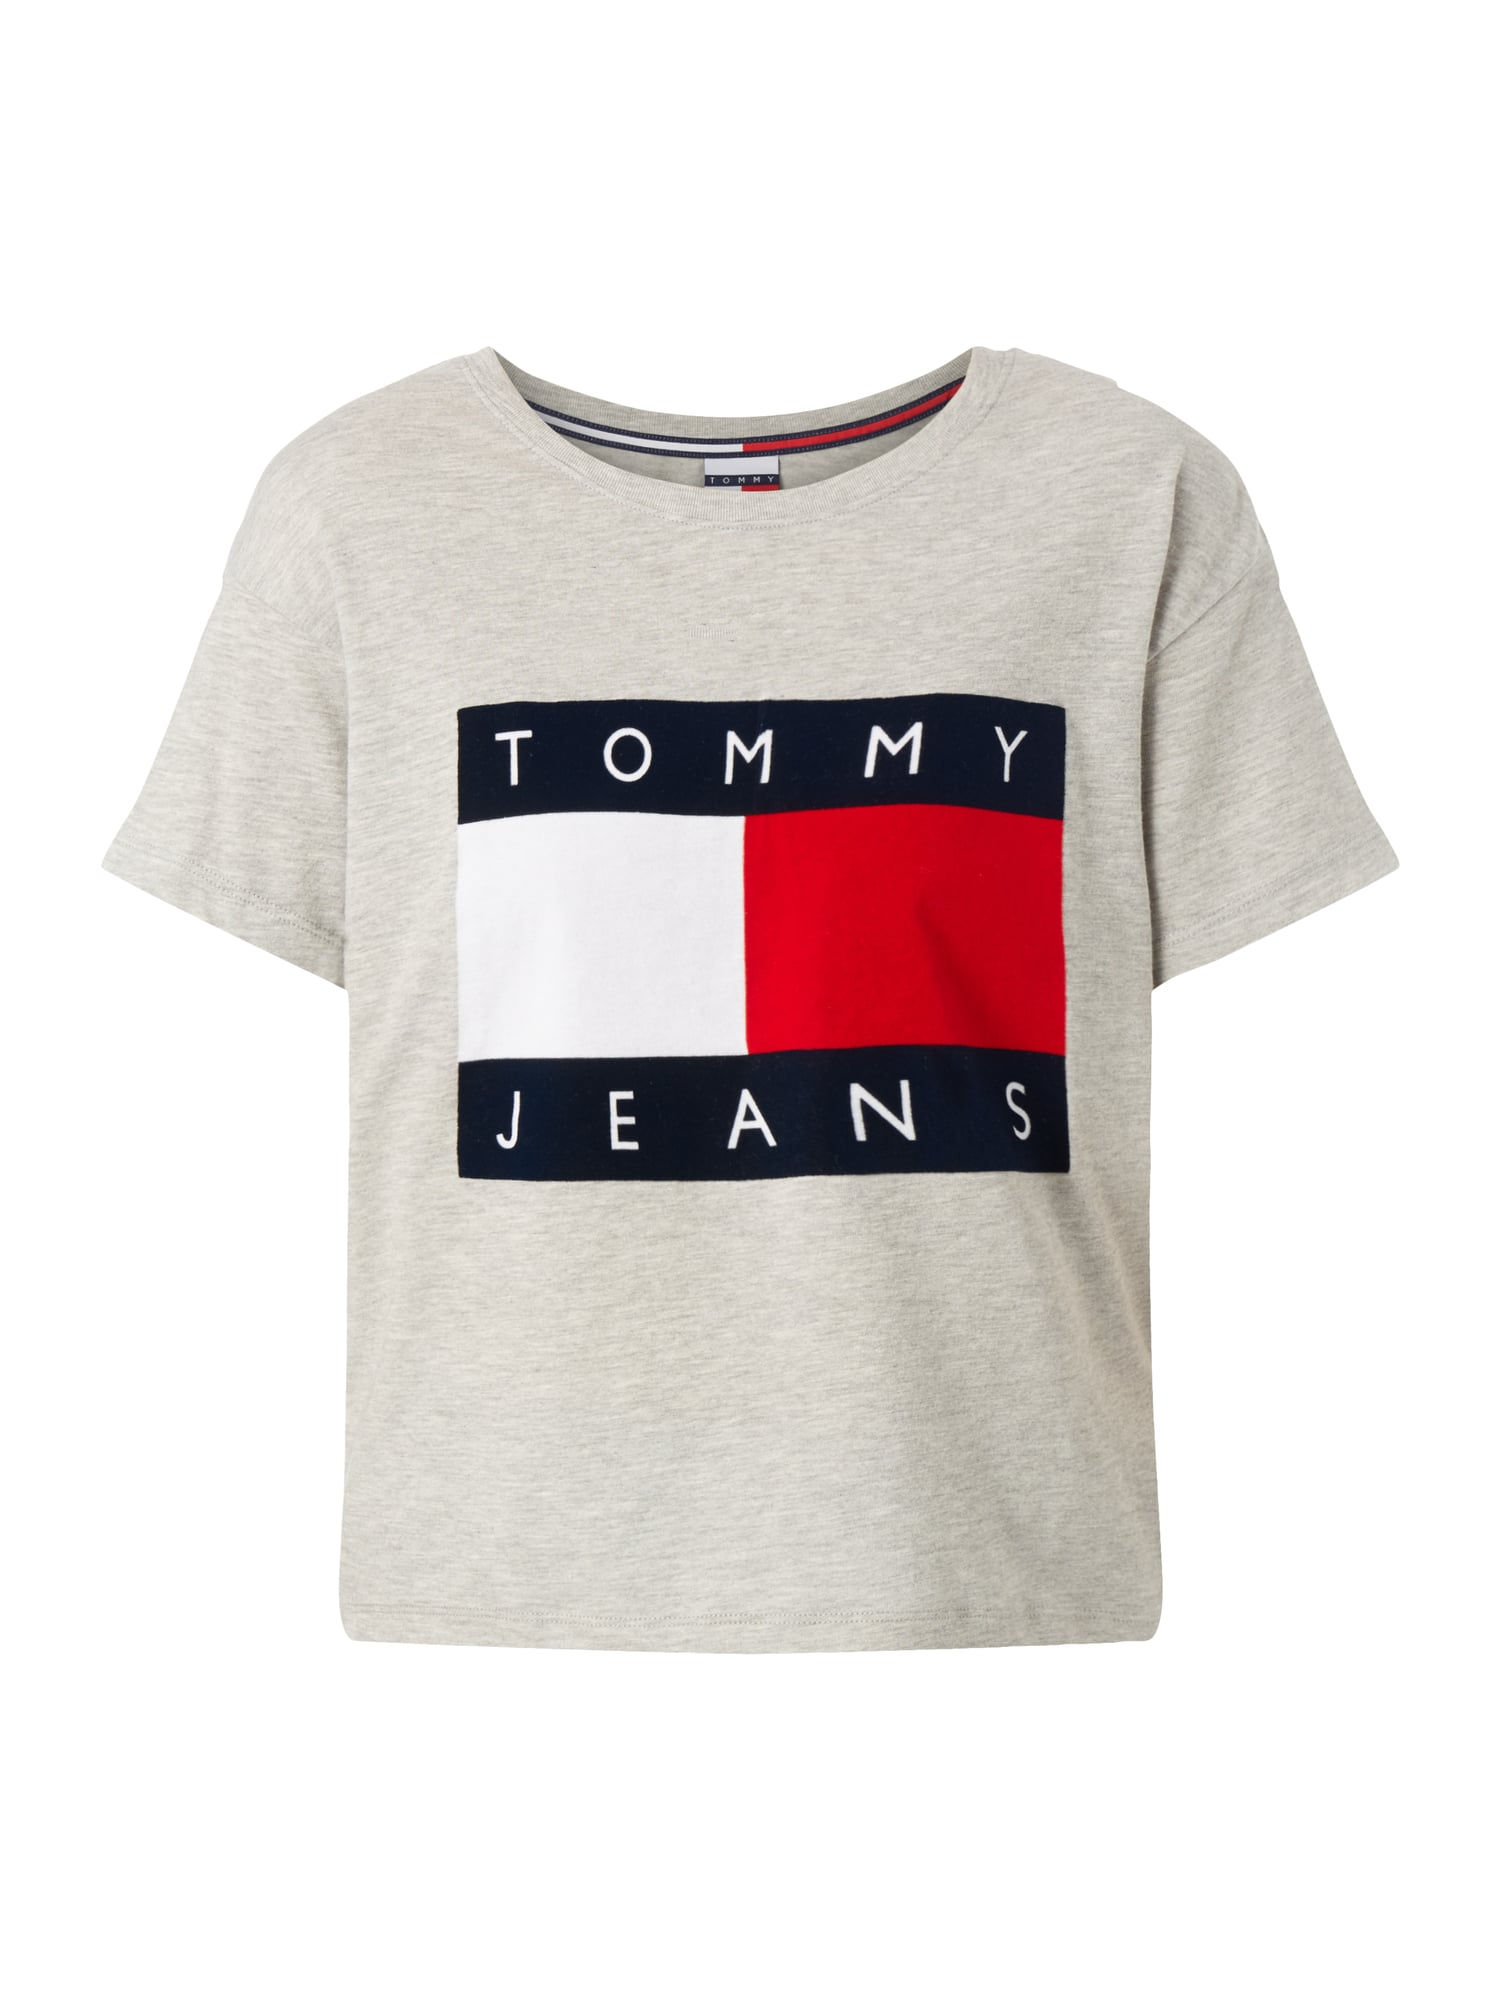 tommy jeans oversized t shirt mit logo flockprint in grau schwarz online kaufen 9709867 p c. Black Bedroom Furniture Sets. Home Design Ideas